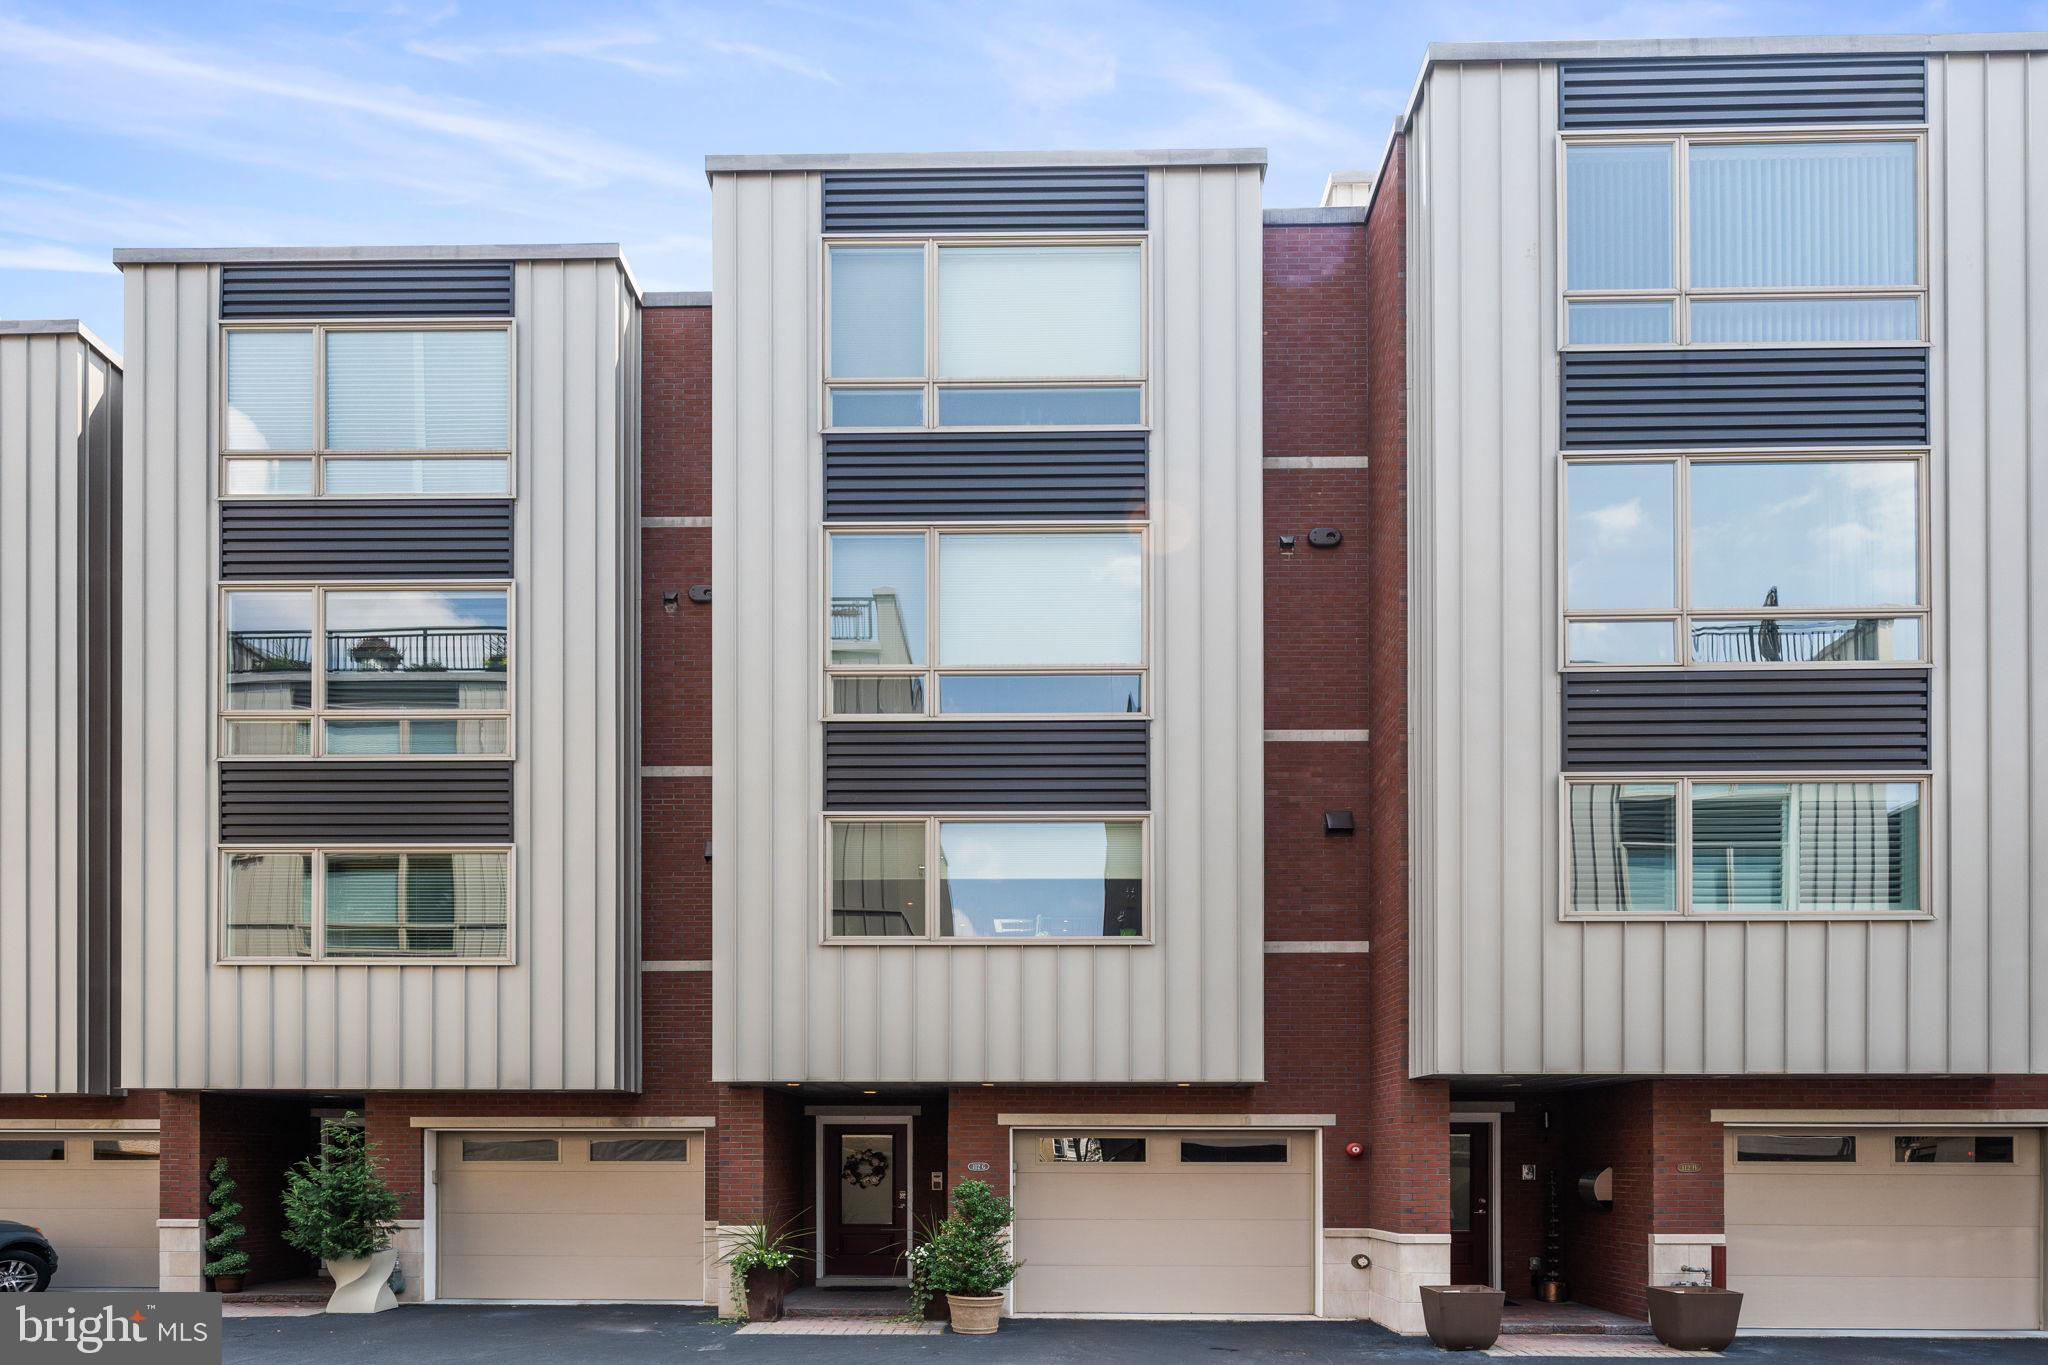 Welcome to the gorgeous Residences at Shot Tower Estates, nestled in the heart of Phila's coveted Queen Village District. This magnificent home leaves little to nothing to be desired.  If you fancy to partake in Phila's Lifestyle Community Living Scene, this property provides you the ability to stroll to shopping venues, high rated eateries, Delaware River activities, walking/jogging/biking trails, city/community parks, dog parks & easy access to everything including the Italian Market & Pat's Steaks! If you are searching for a property w/the security of a gated community, 2-car parking & an inexpensive HOA that takes care of your common area maintenance, this property hits the mark! And if you will settle for nothing less than a premium living environment, top of the line appliances & finishings, gorgeous HW & premium flooring, a 5 stop elevator & attention to detail at every turn, then this wonderful property will fulfill your needs! Welcome to unit G.  As you arrive, the electric security gates will open & lead you in. As you pull into your garage & enter, the sometimes chaotic world will be left behind you. Whether you take the elevator upward or stroll on the gorgeous/floating staircase, the main level greets you w/high ceilings, an open-spacious design, large windows providing soothing natural sunlight & peace & quiet. This property is designed into 5 spectacular floors w/4,000 sqft of finished-functional space. The ceilings are high & the flooring is beautiful w/premium HW throughout & tiling in the basement, BAs & utility rooms. The lighting contains state of the art fixtures w/over 100 recessed lights. The flooring layout: Ground level contains the garage, foyer & an in-law suite/bedroom w/a full BA. (can also be used as a den/office/gym).  There are sliders that give access to your backyard patio/garden w/room for entertaining or private relaxation. The 1st floor is home to your LR w/a gas fireplace & oversized sliders to your french balcony. There is a la